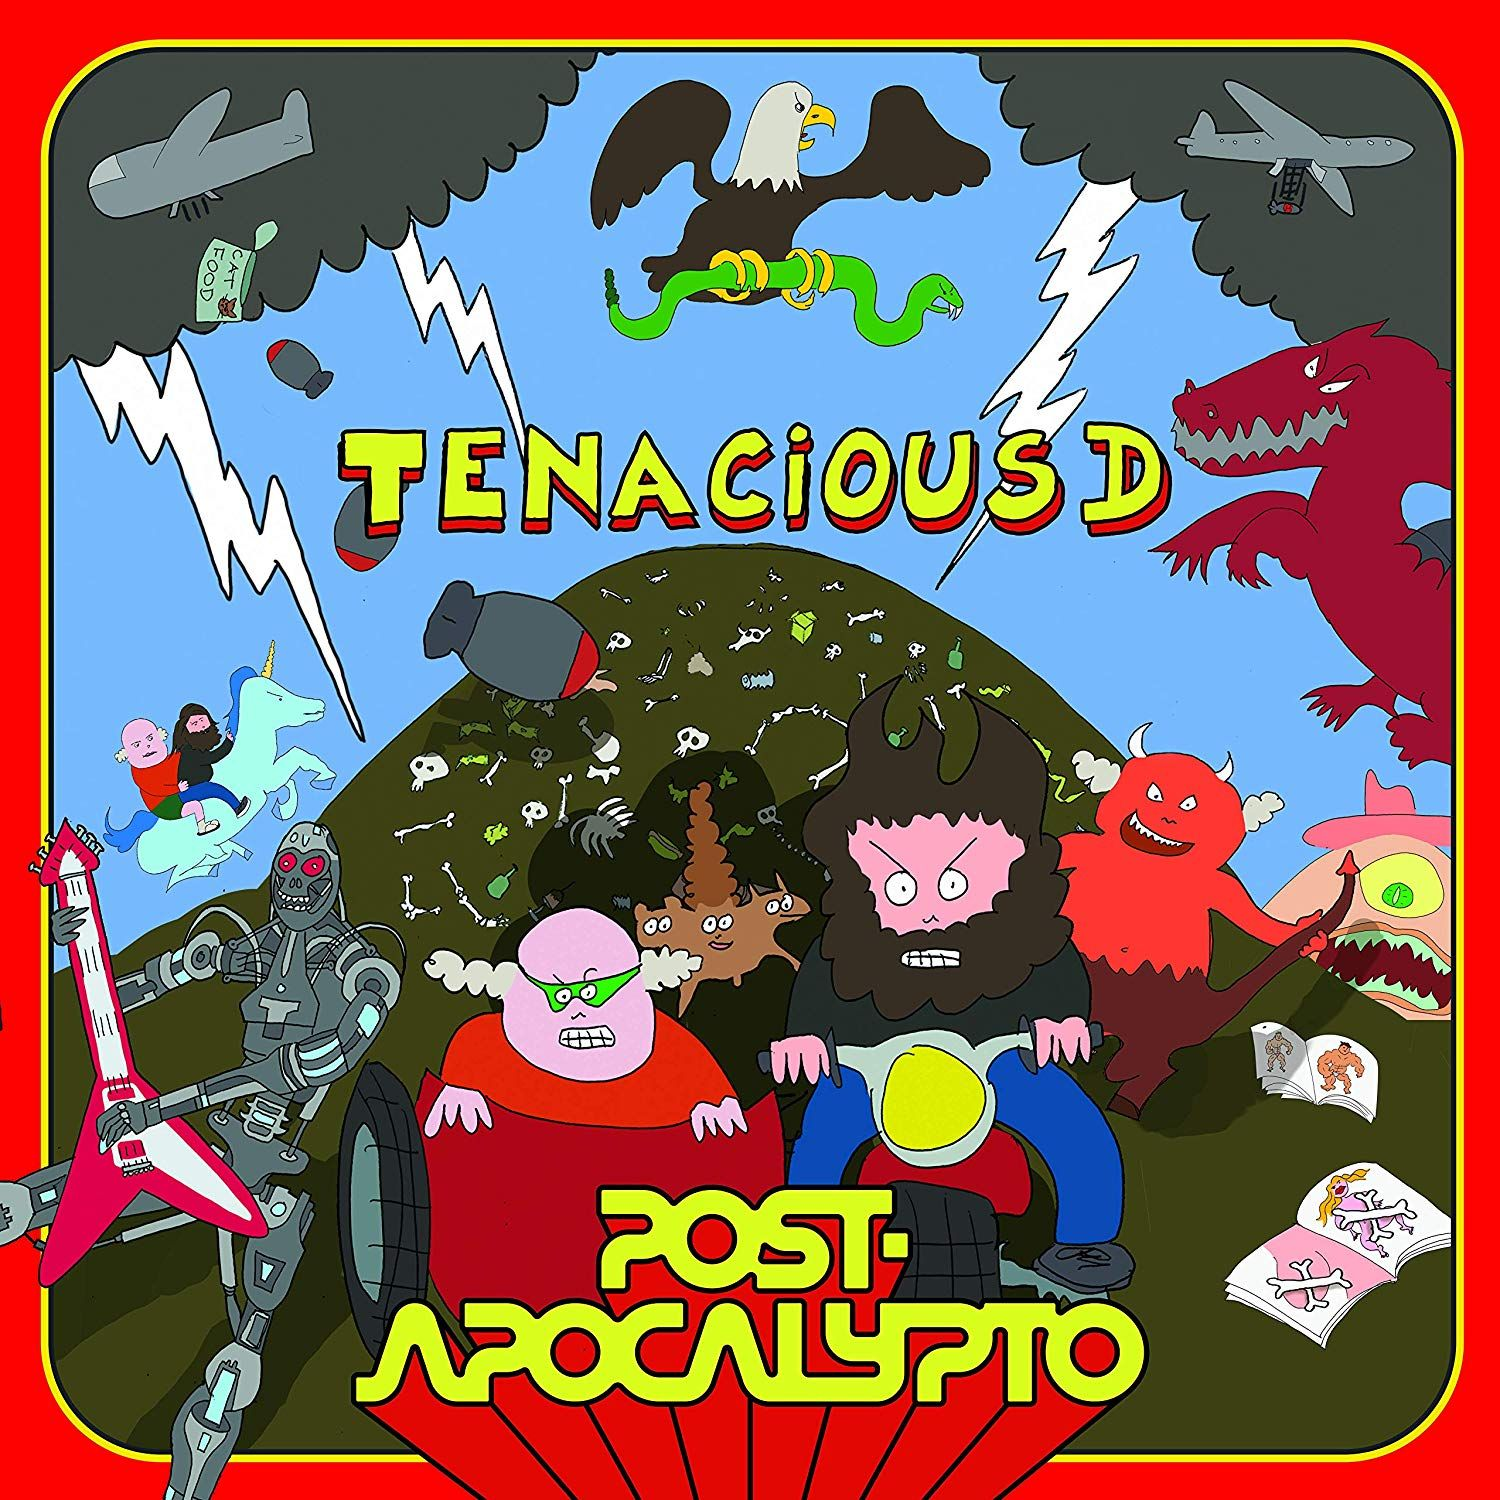 Tenacious D - Post-apocalypto album cover